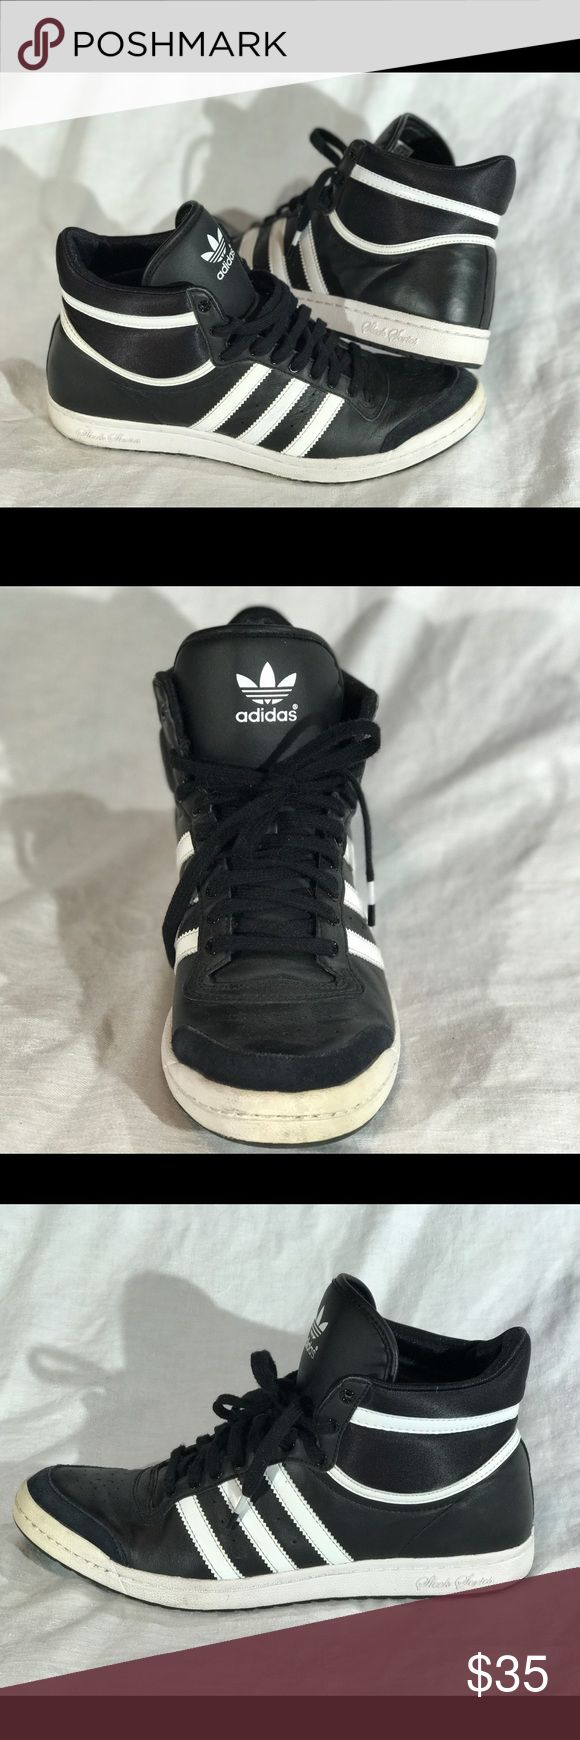 Adidas Sleek Series Hightop Sneakers Adidas Sleek Series Hightop Sneakers: size 9! Only worn a couple of times and are in great condition! i don't wear sneakers anymore so these need a new home because they're so cute & haven't been worn in a while! Adidas Shoes Sneakers